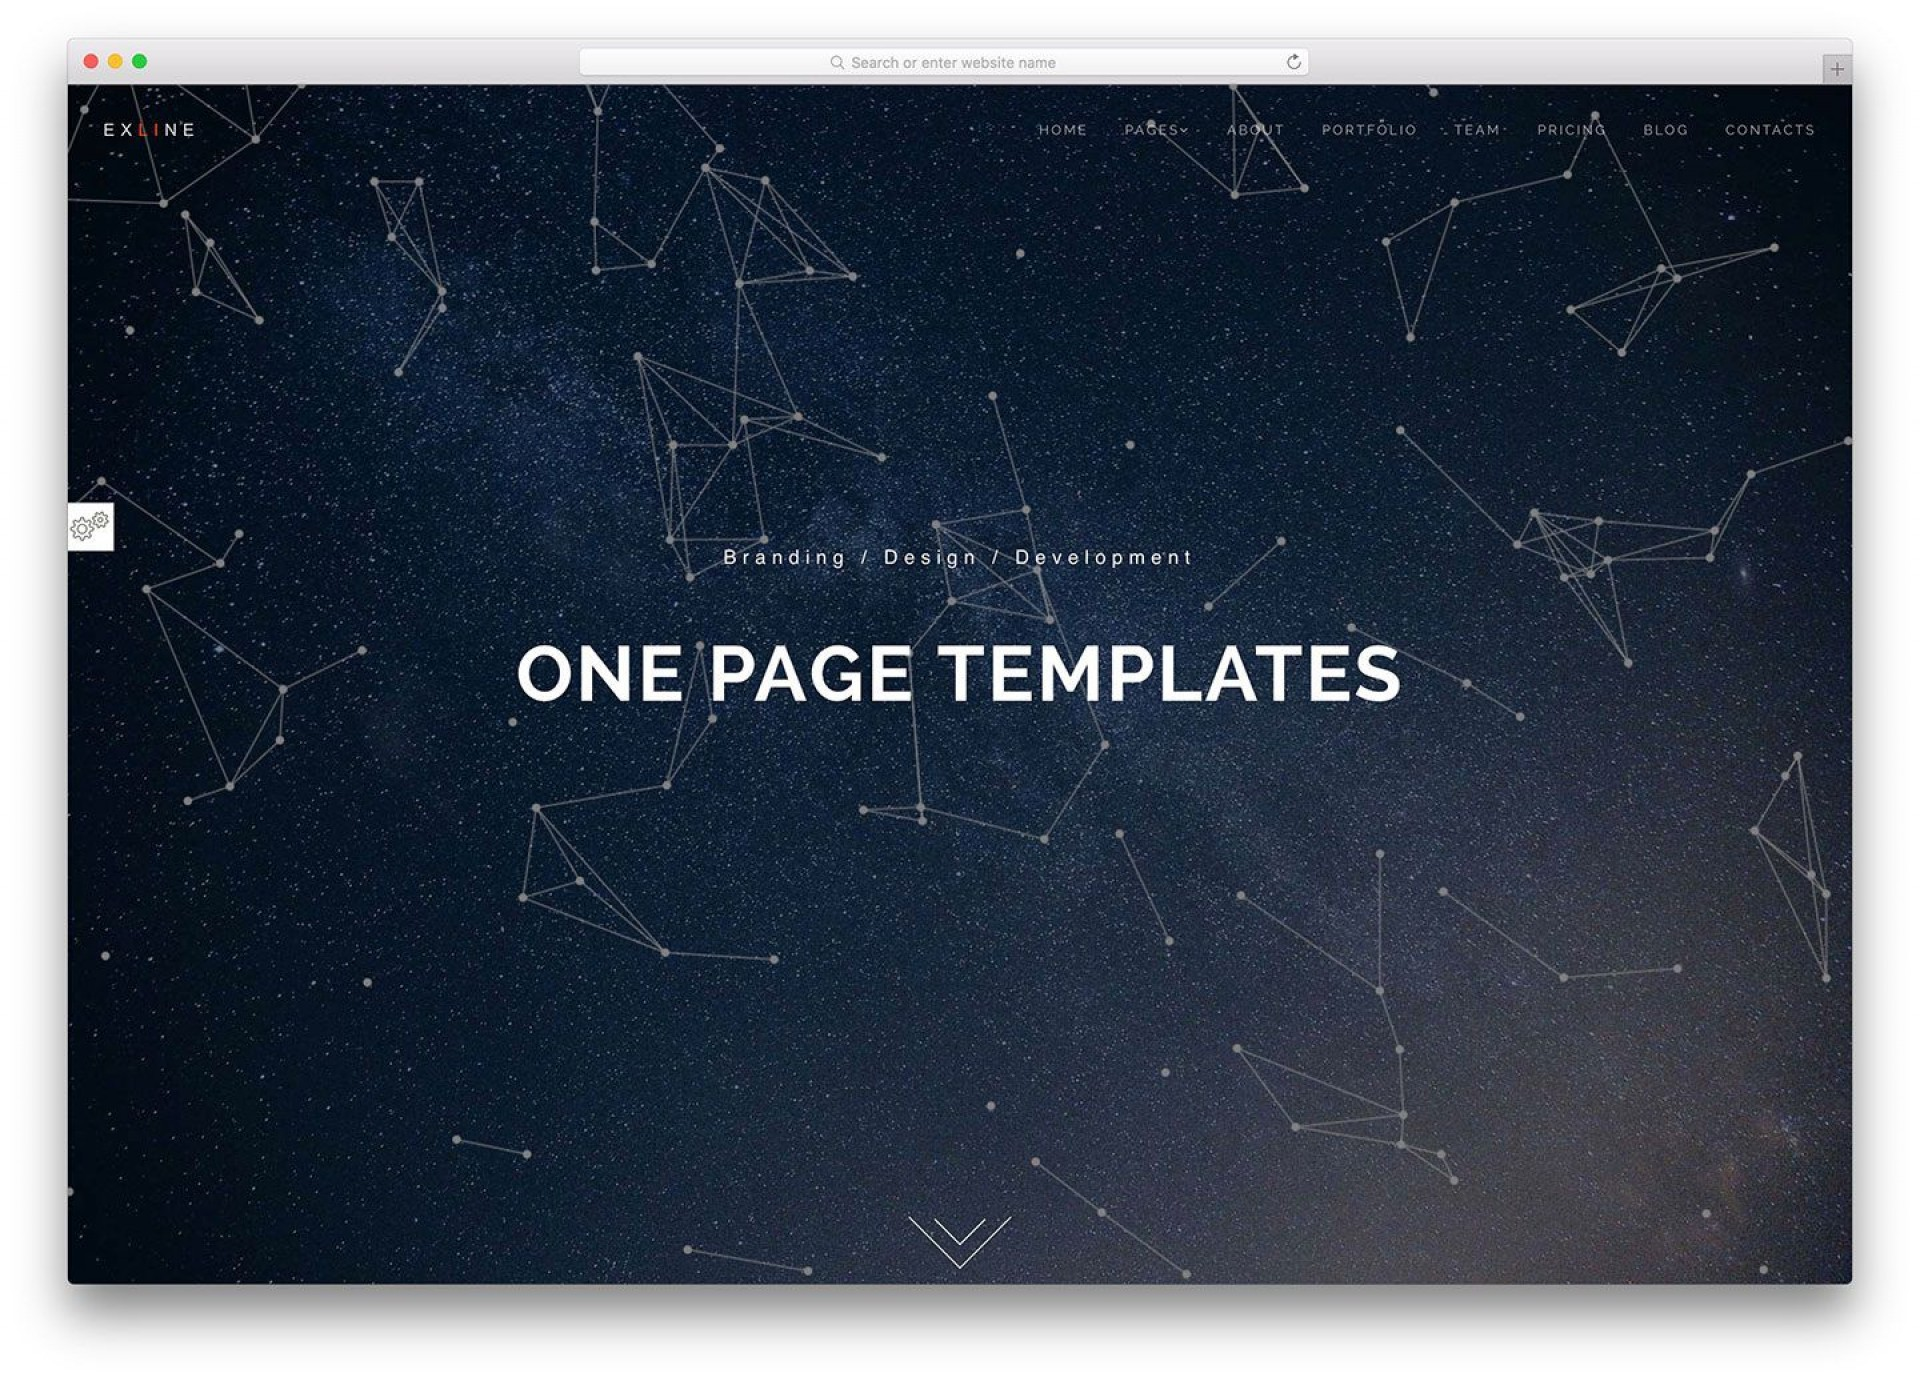 004 Fantastic Download Web Template Html5 Highest Quality  Photography Website Free Logistic Busines1920